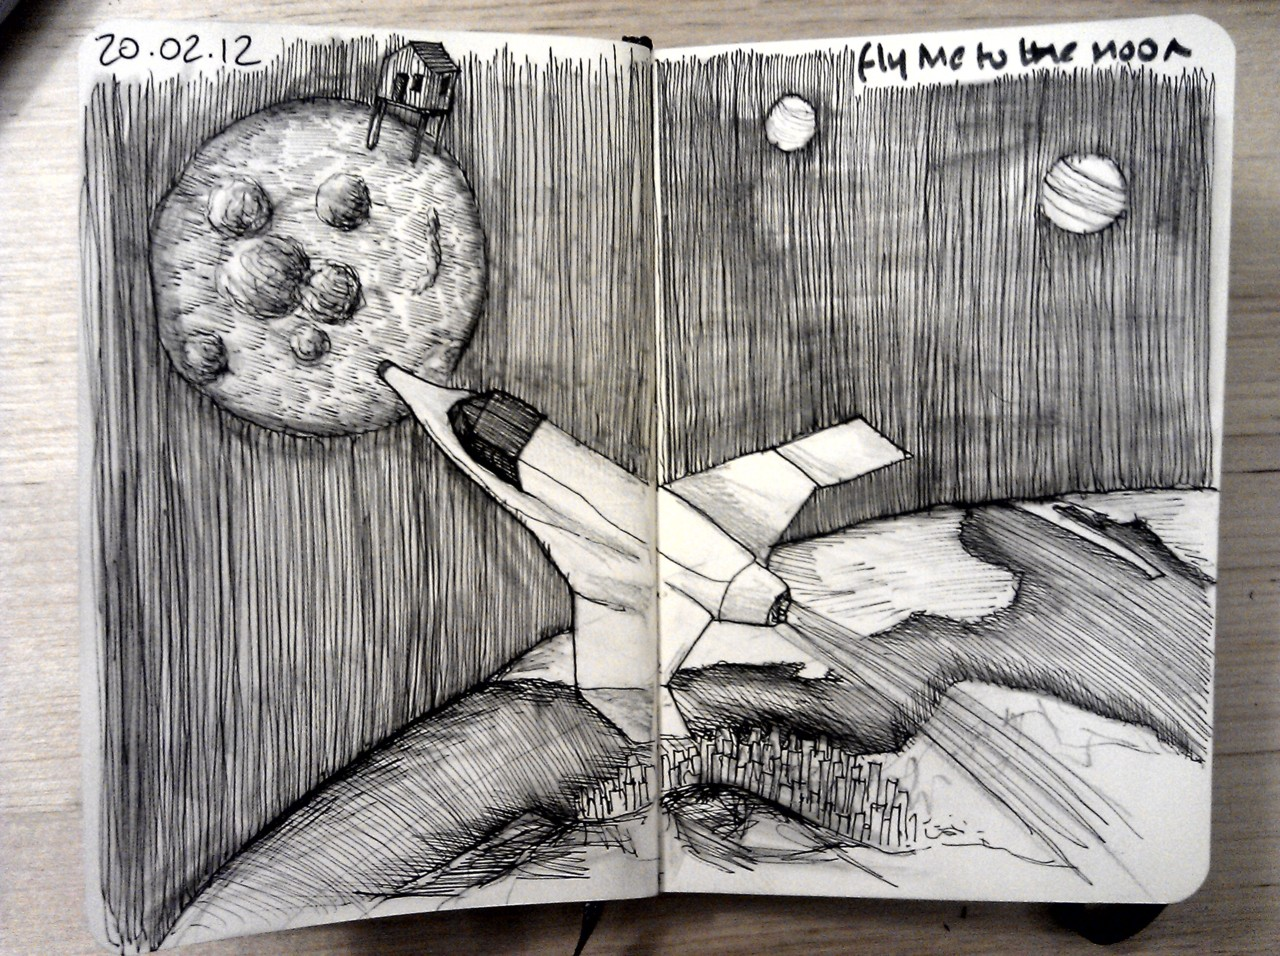 28 drawings later … day 20 … fly me to the moon (please? I need a holiday)